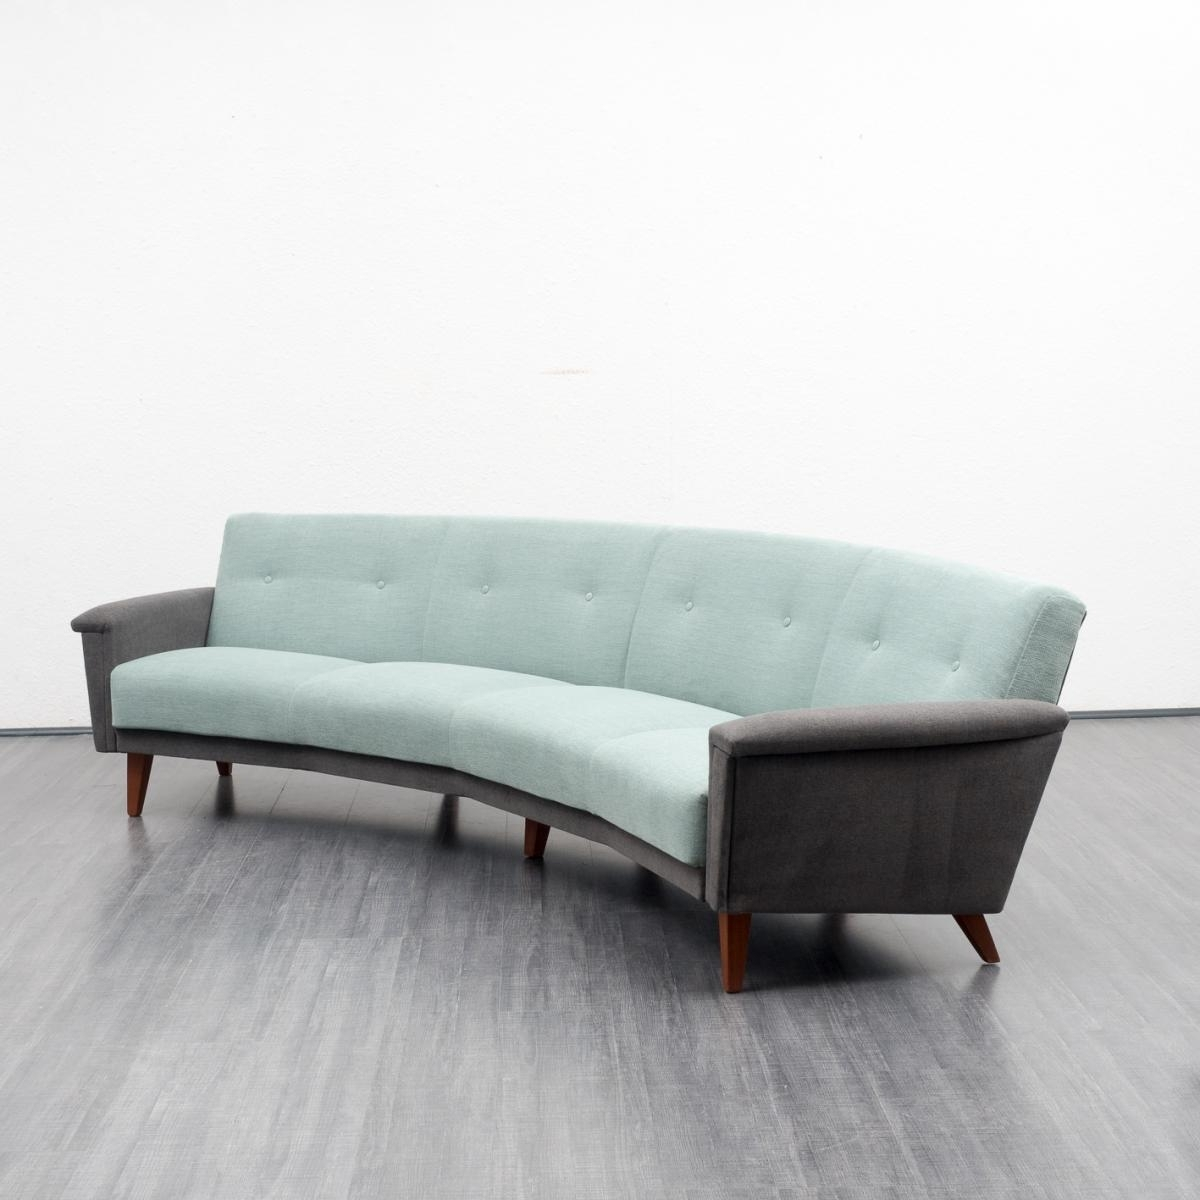 Large Semicircular Sofa, 1950s For Sale At Pamono Throughout Popular Semicircular Sofas (View 16 of 20)